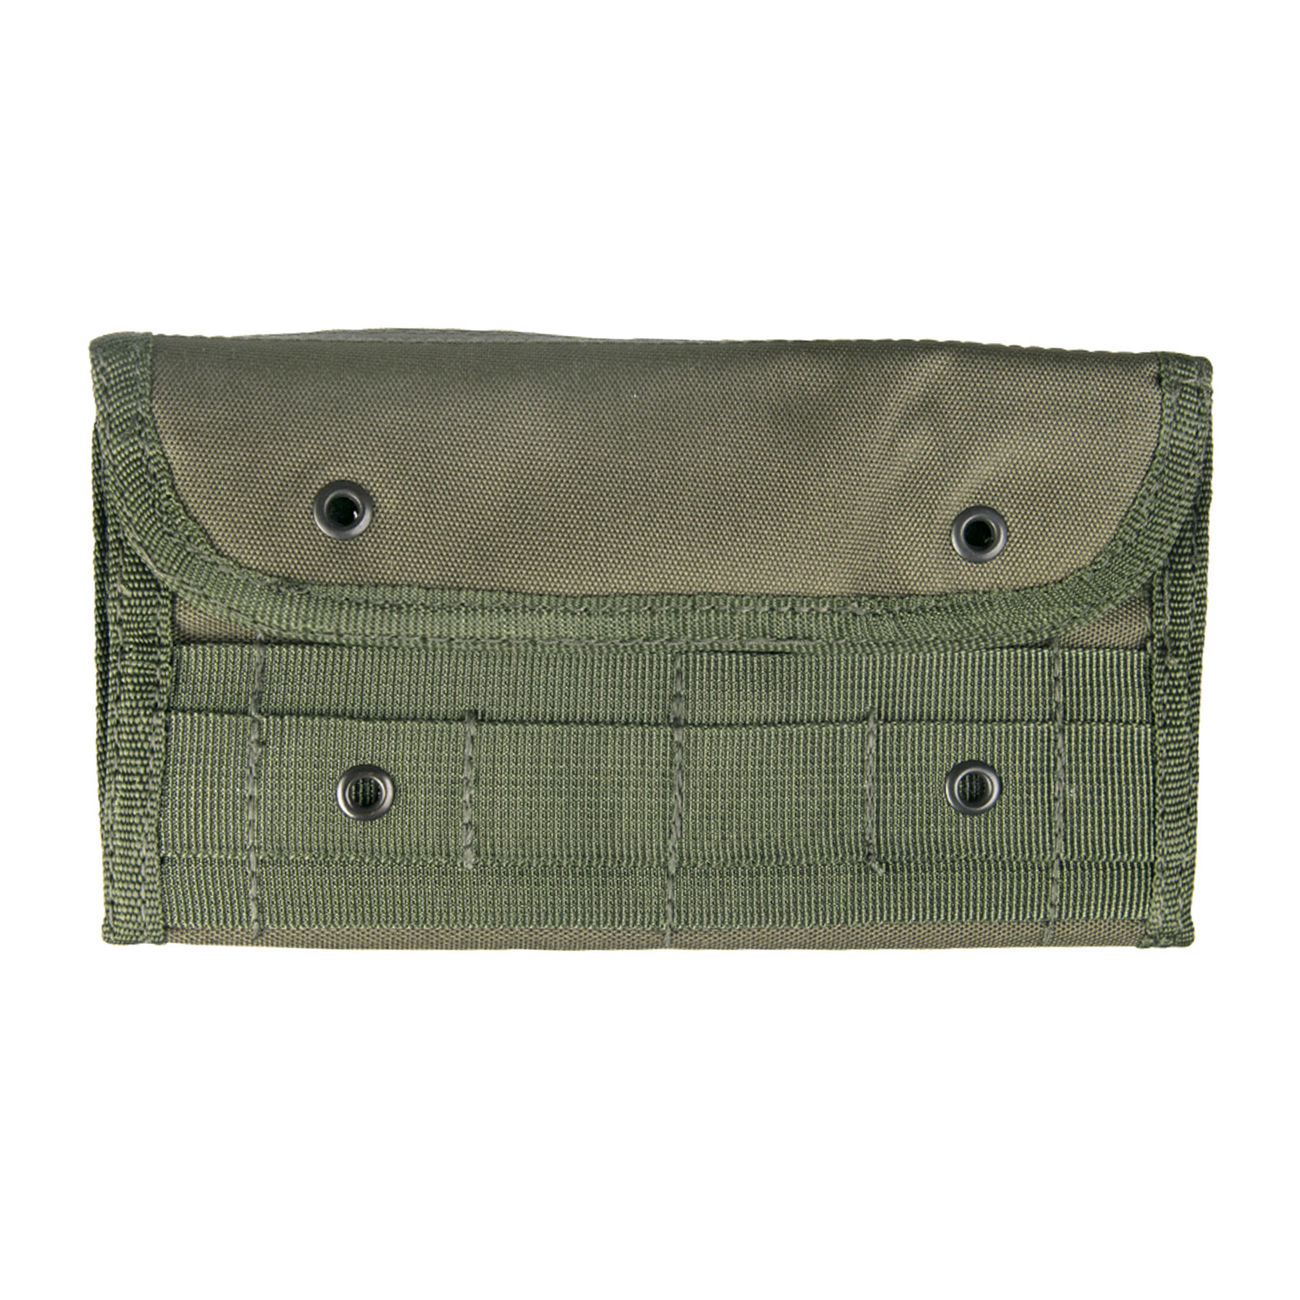 Mil-Tec Brieftasche Wallet Pouch Molle Oliv 0